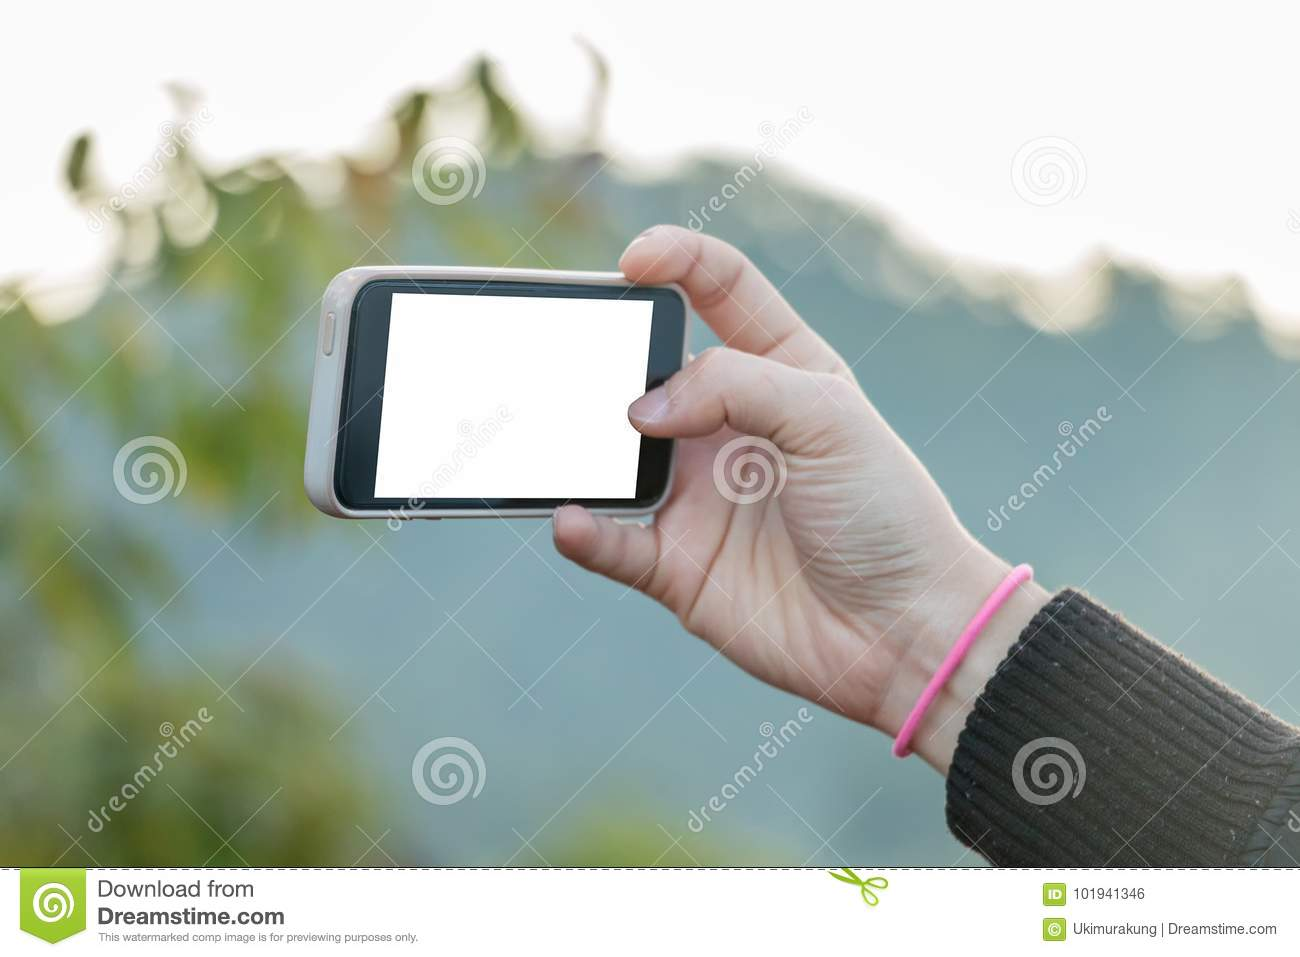 Hand holding cell phone to take a photo, blank screen on white